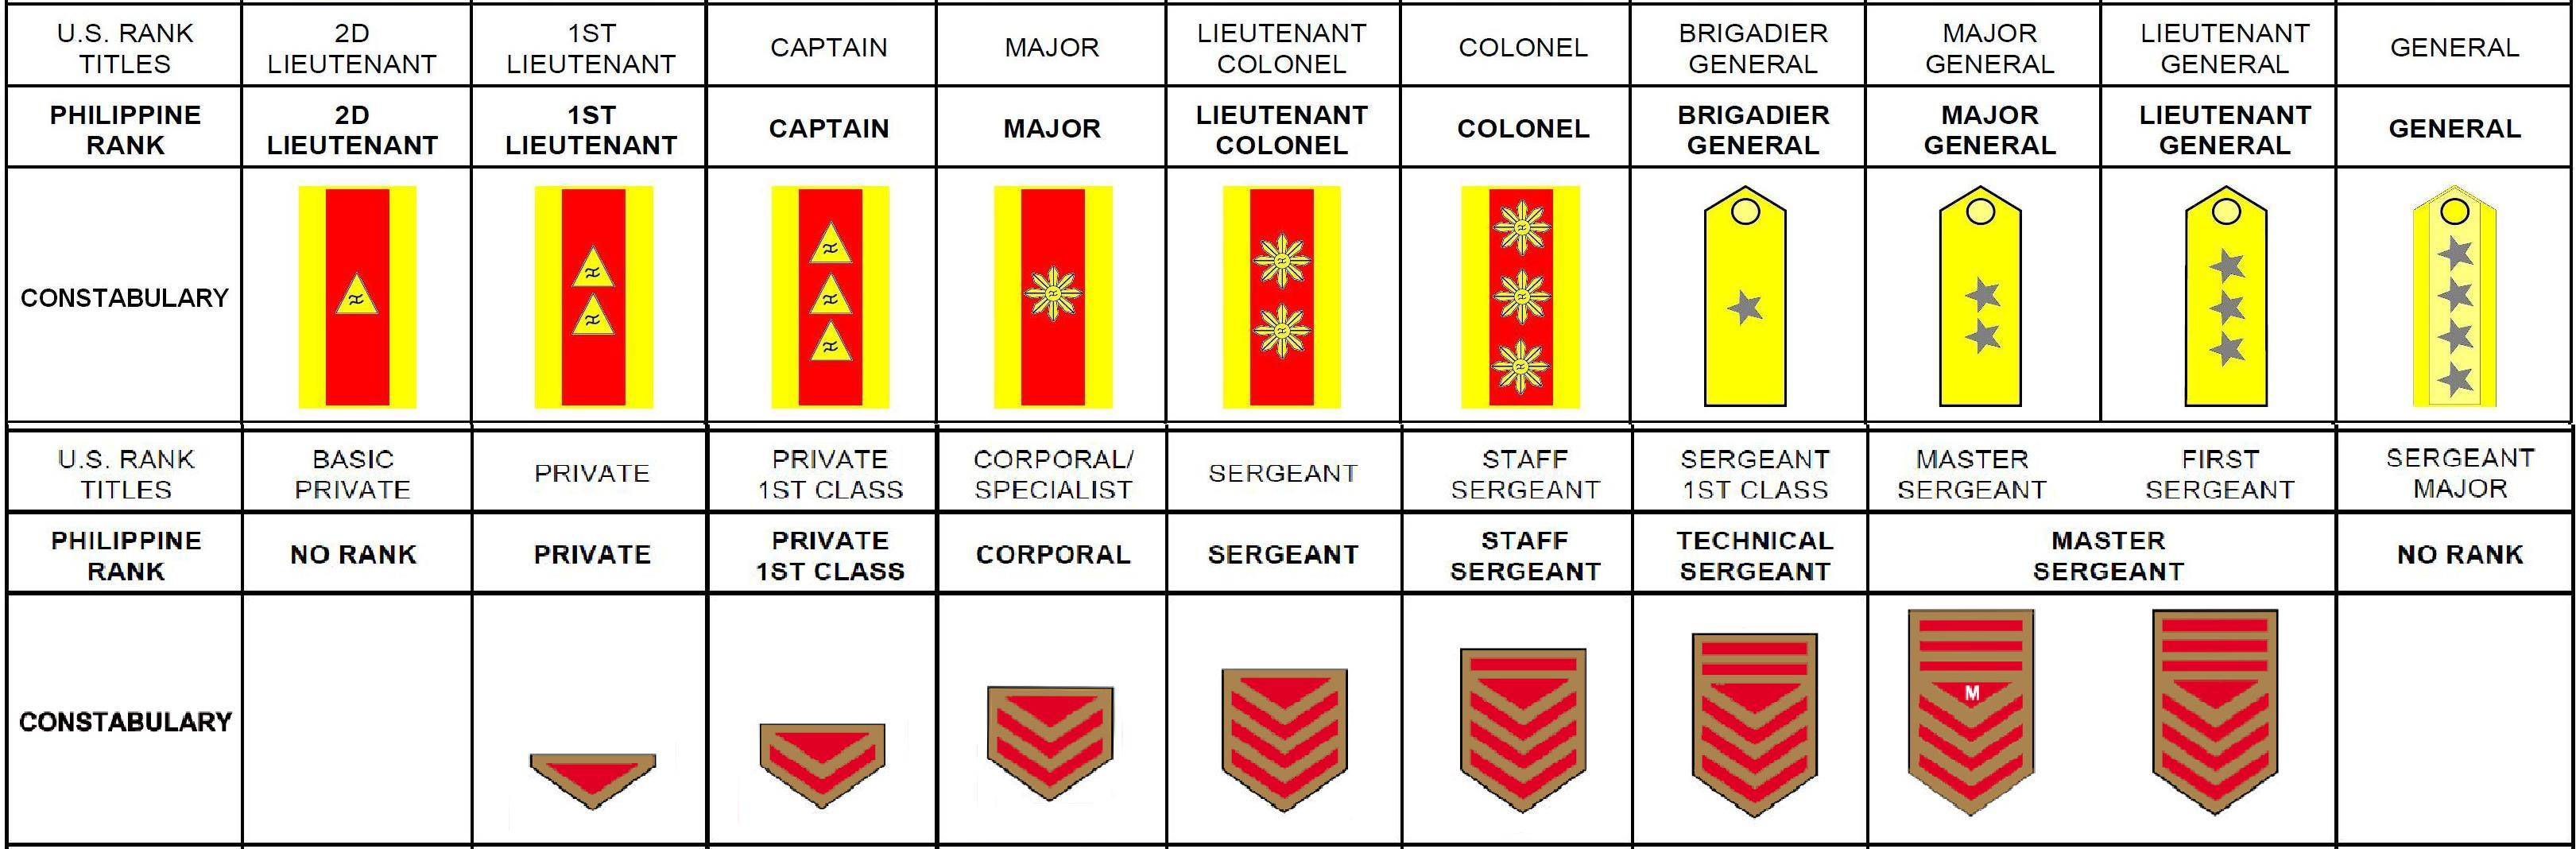 Army rank structure enlisted and officer dating 3